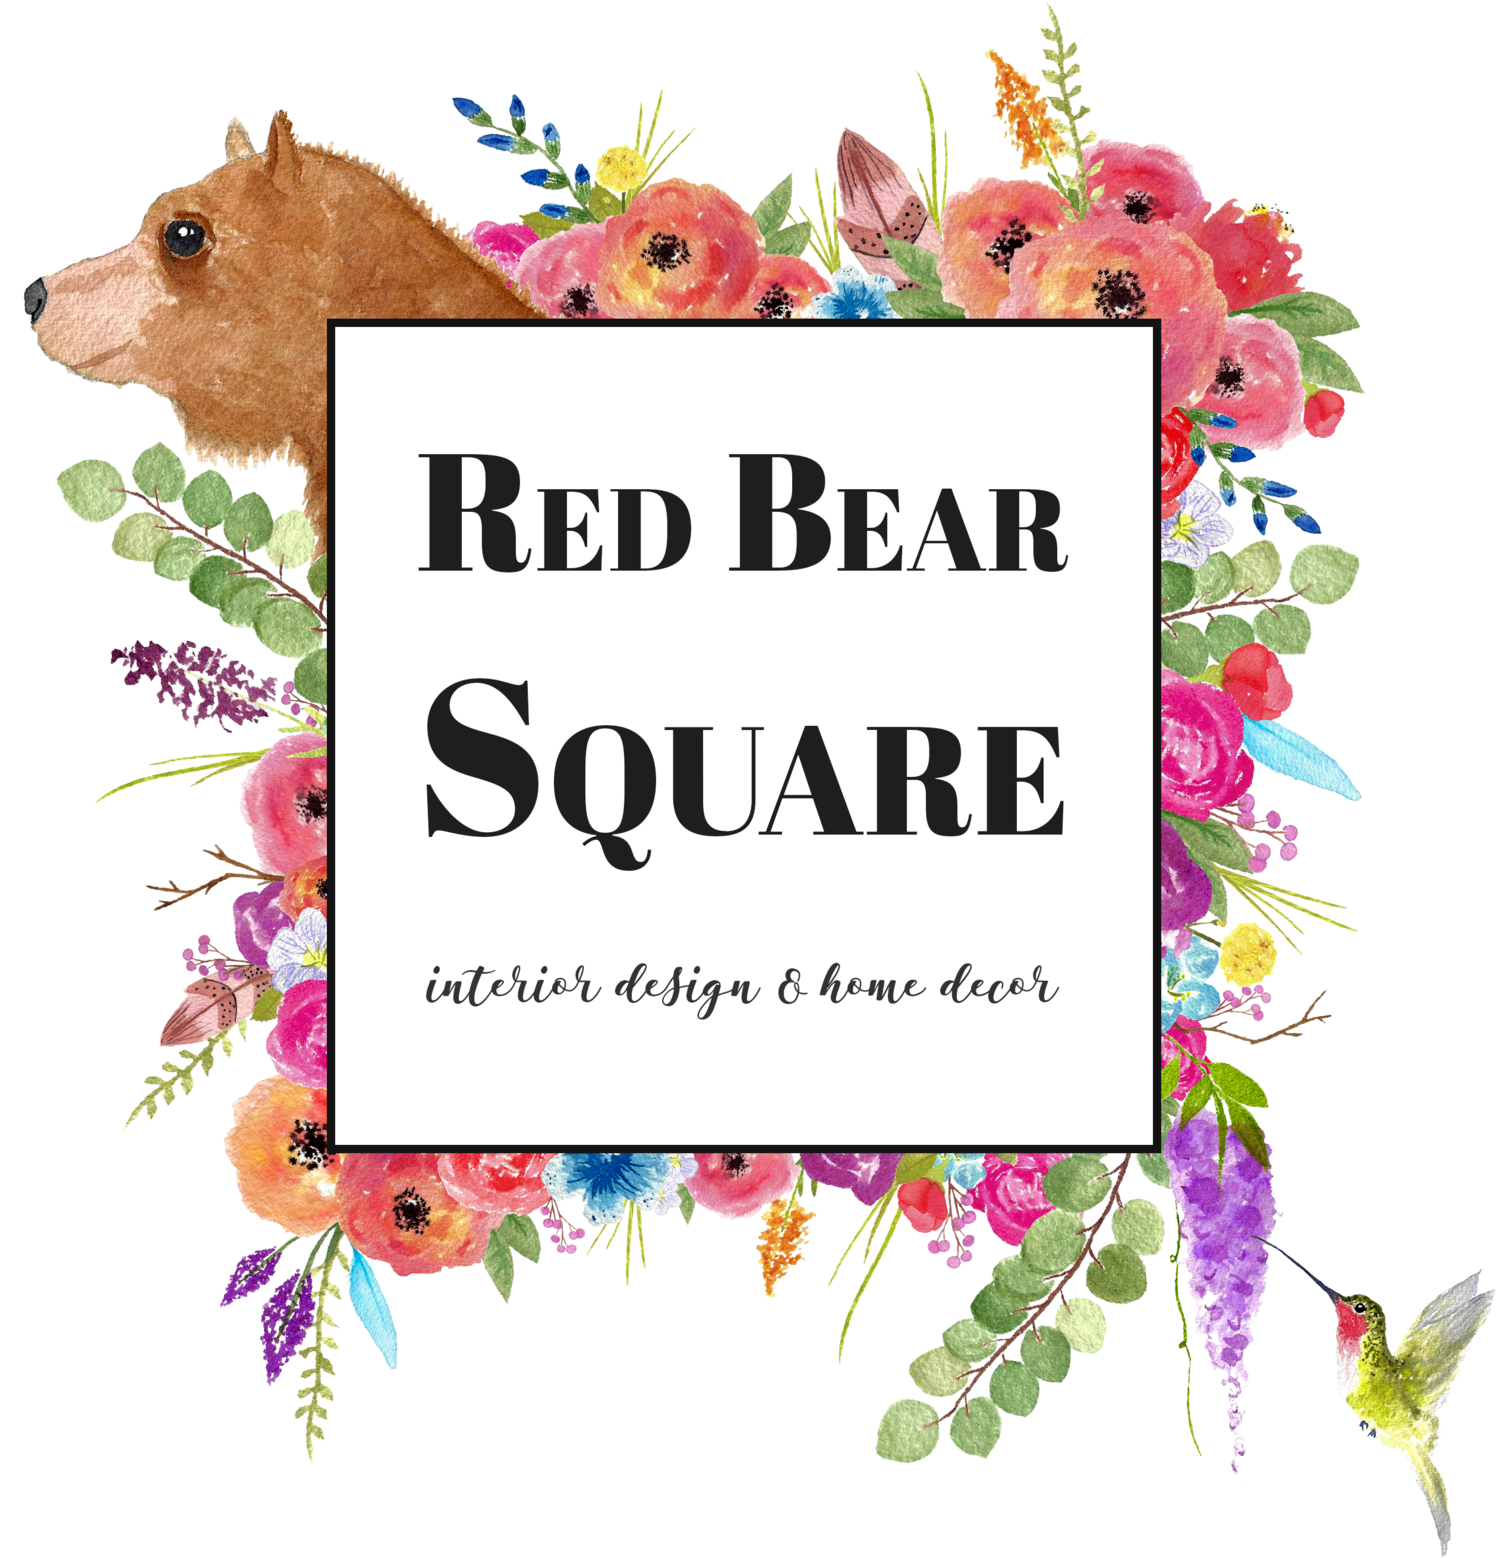 Red Bear Square